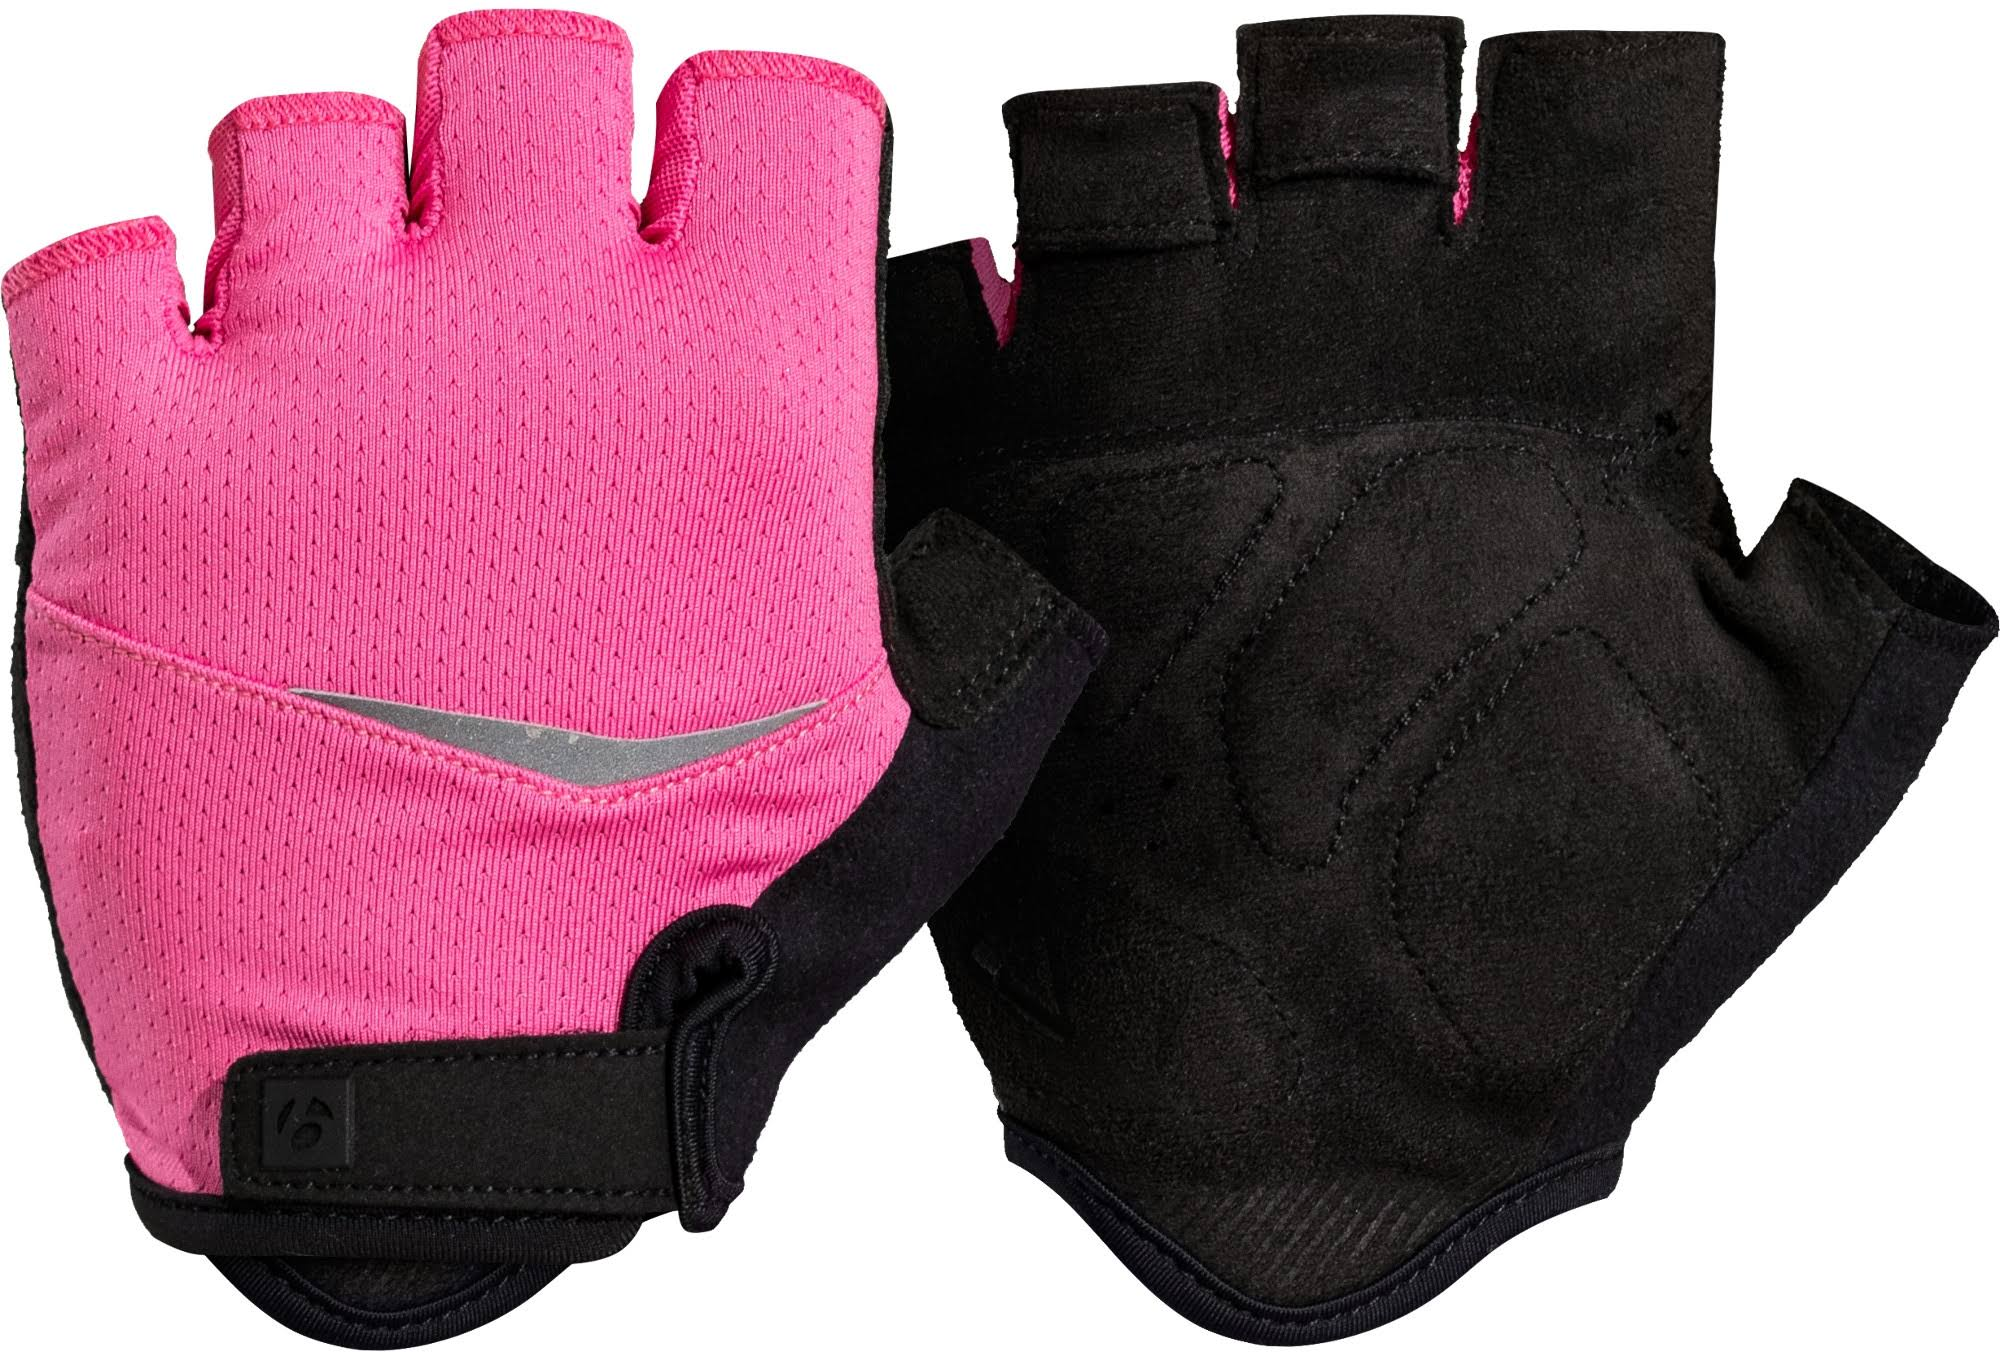 Bontrager Anara Women's Cycling Glove - Vice Pink - Small